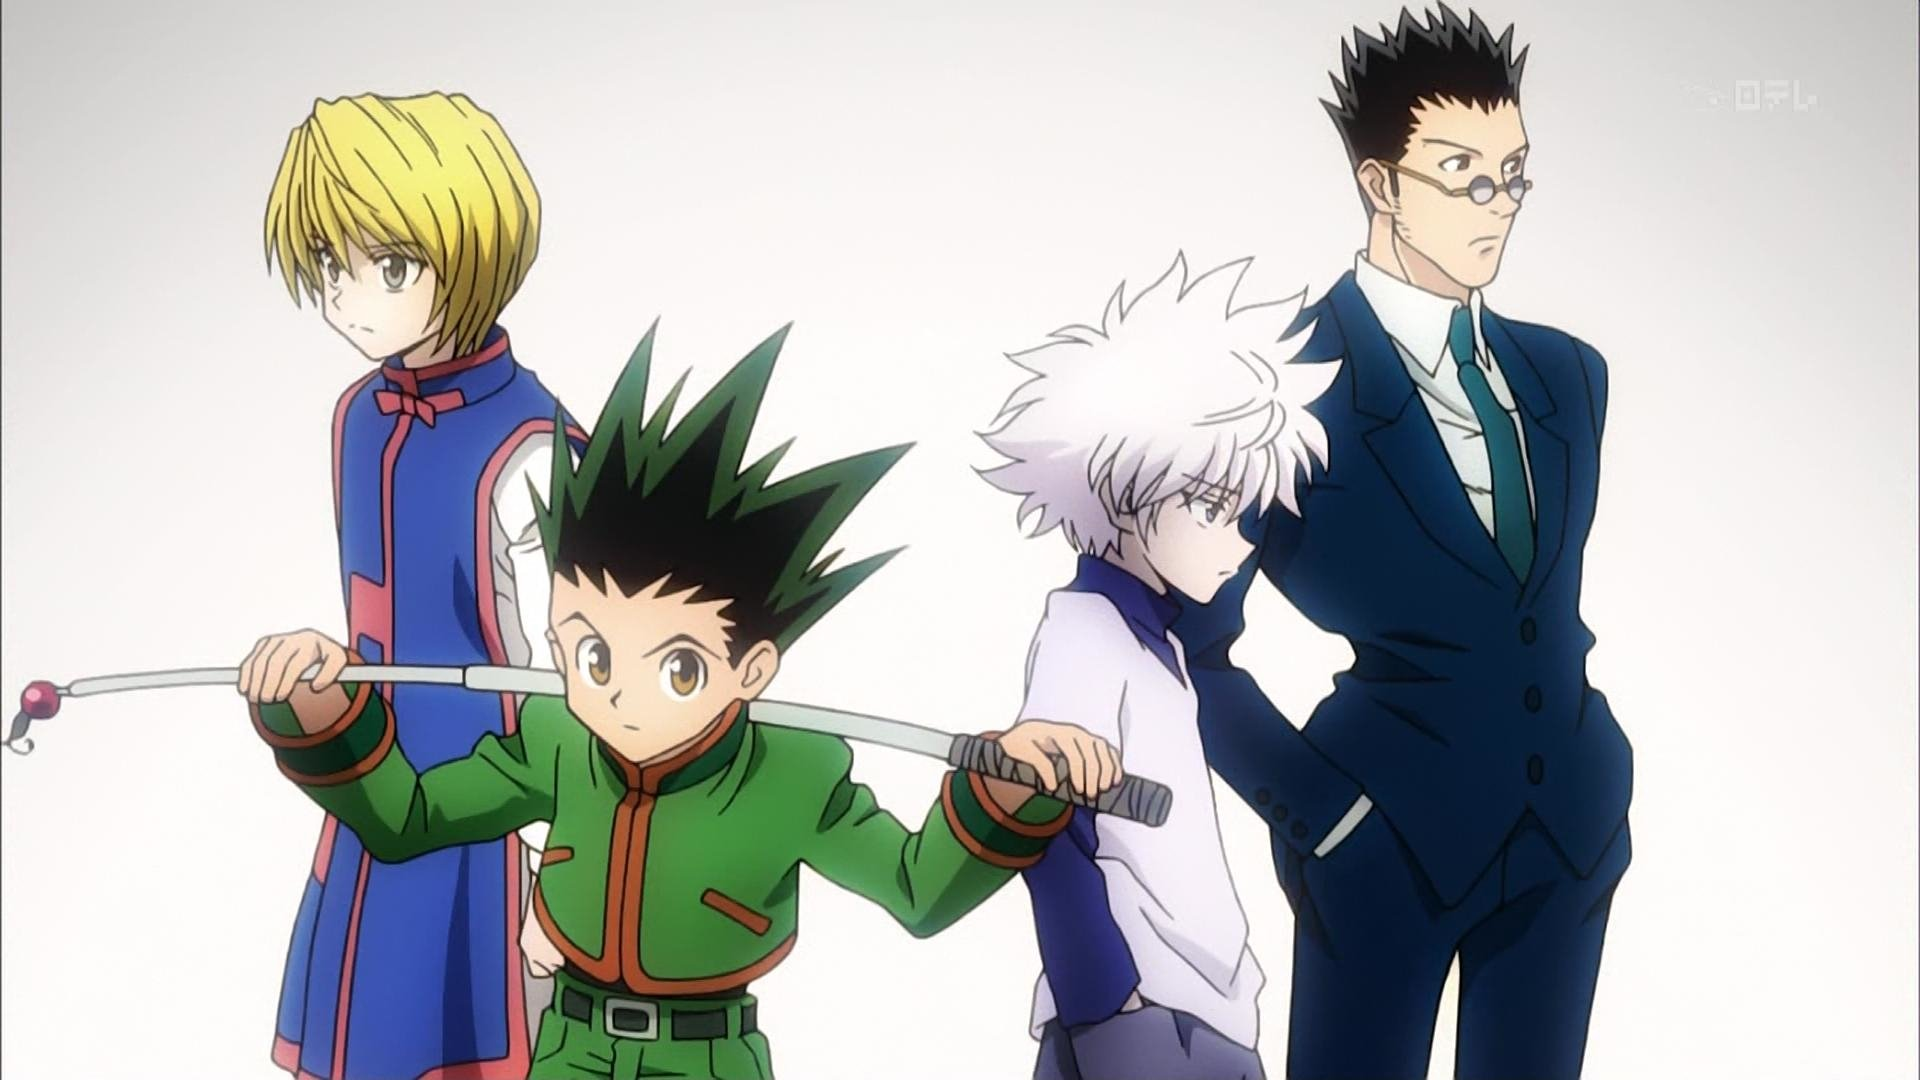 49 hunter hunter hd wallpapers background images wallpaper abyss hd wallpaper background image id456412 1920x1080 anime hunter x hunter voltagebd Gallery